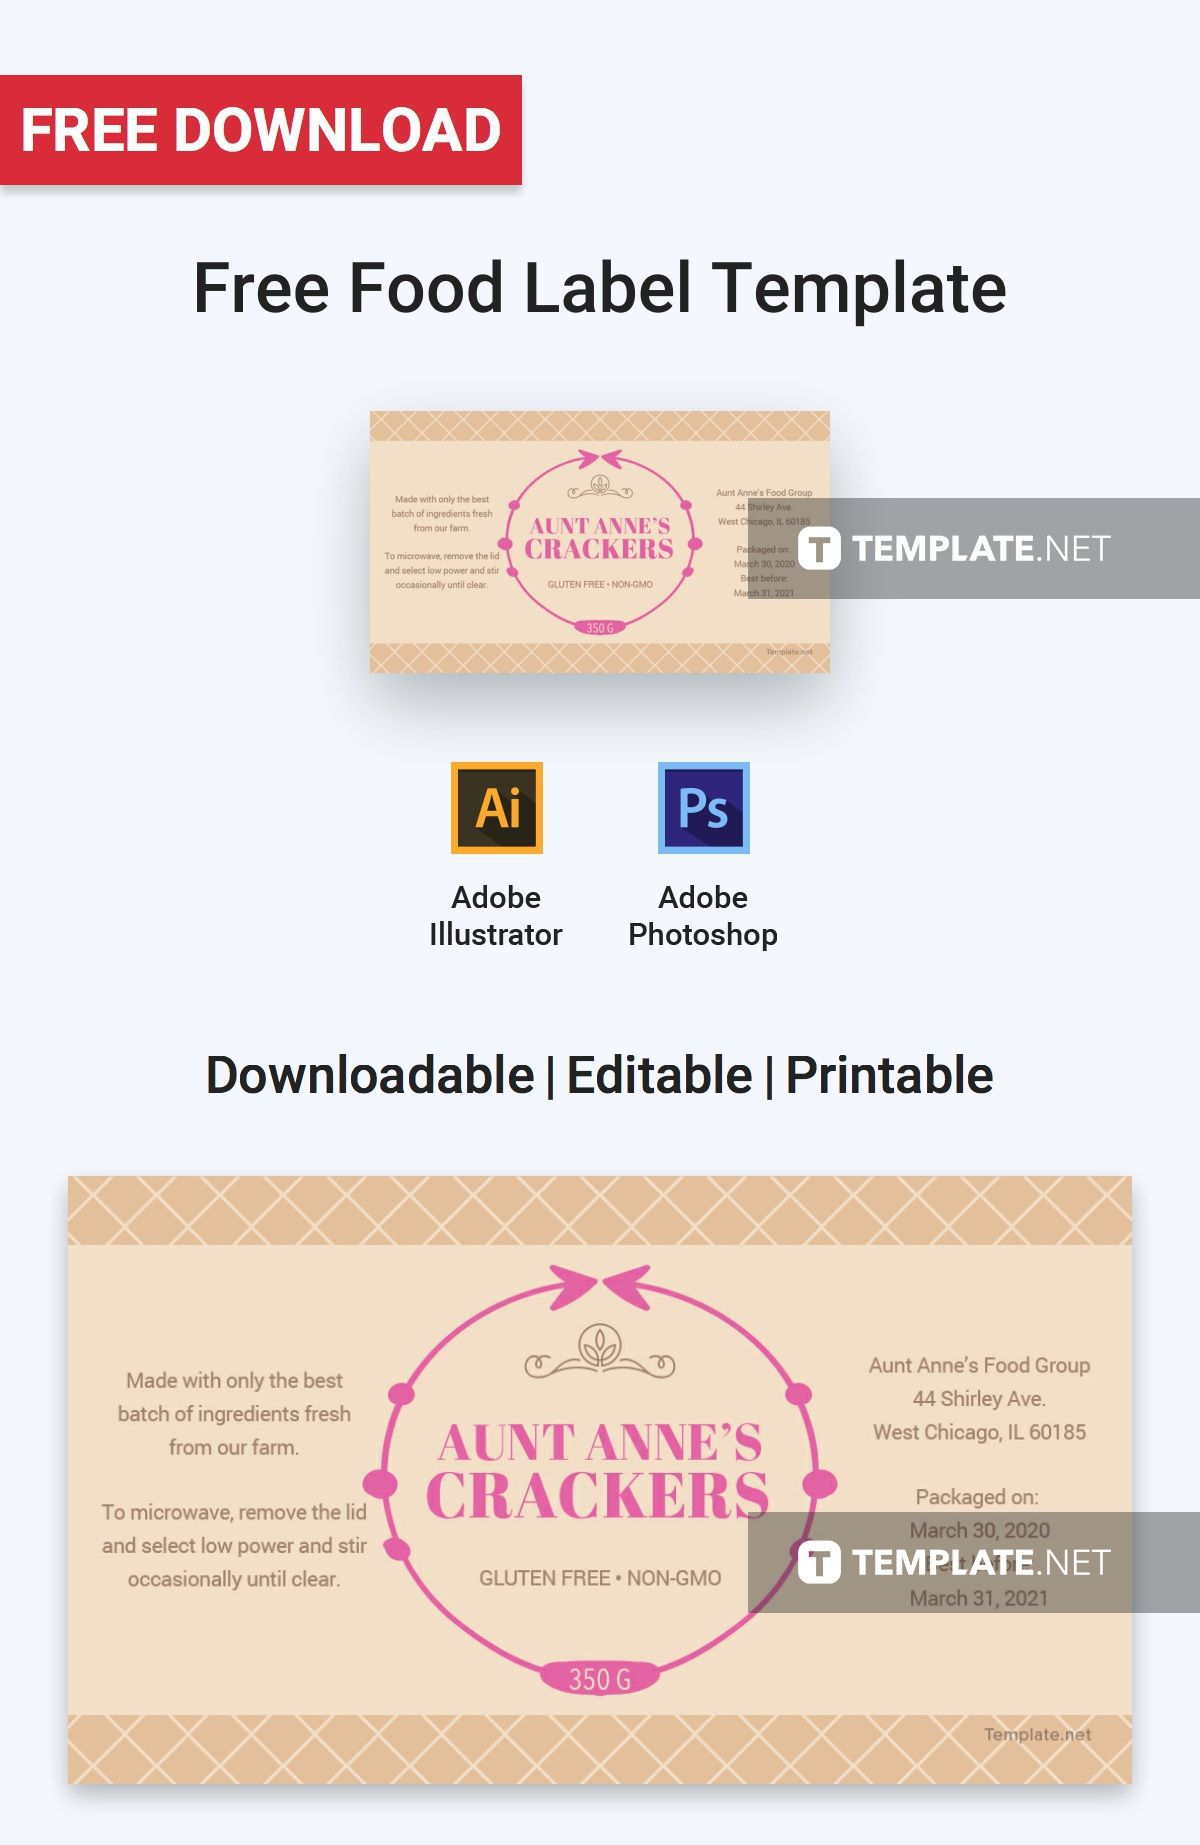 004 Outstanding Free Food Label Design Template High Definition  Templates DownloadFull